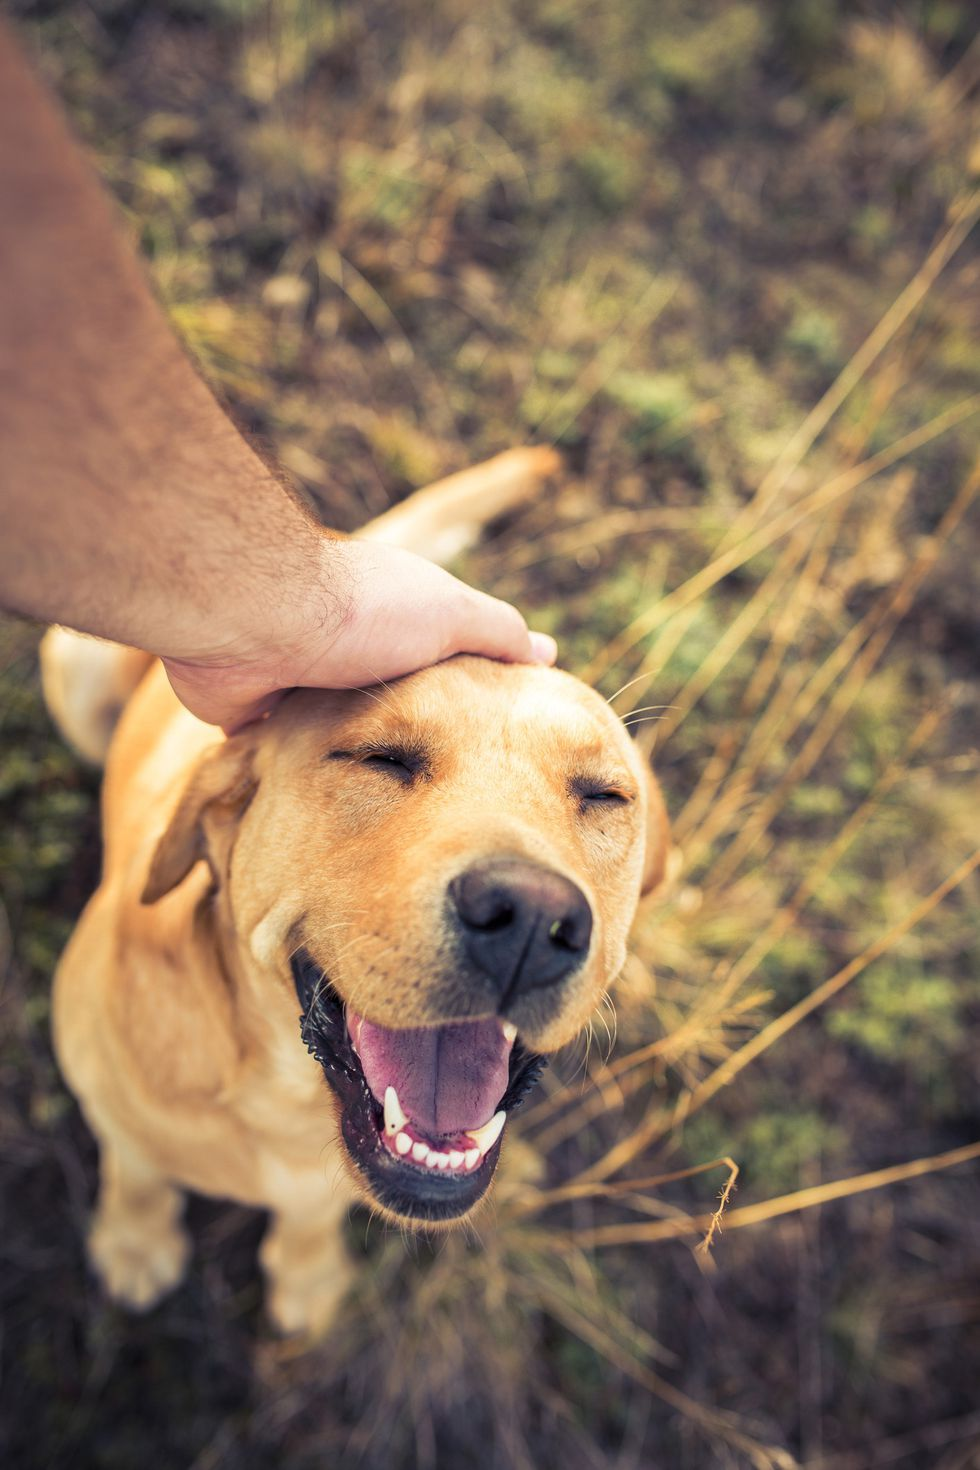 Boy Dog Names That'll Make You Want to Adopt a New Best